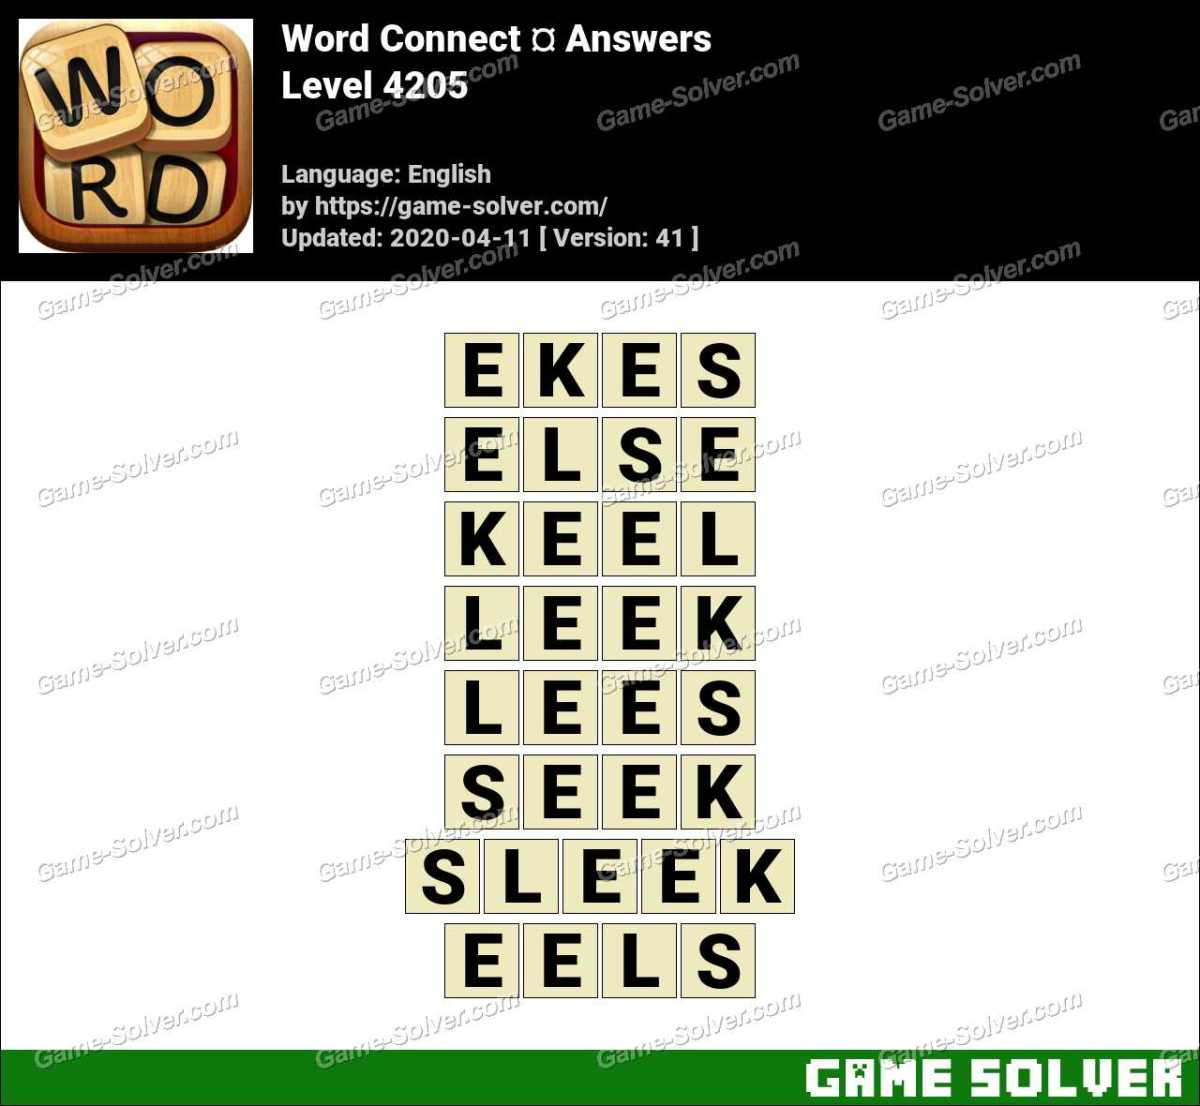 Word Connect Level 4205 Answers